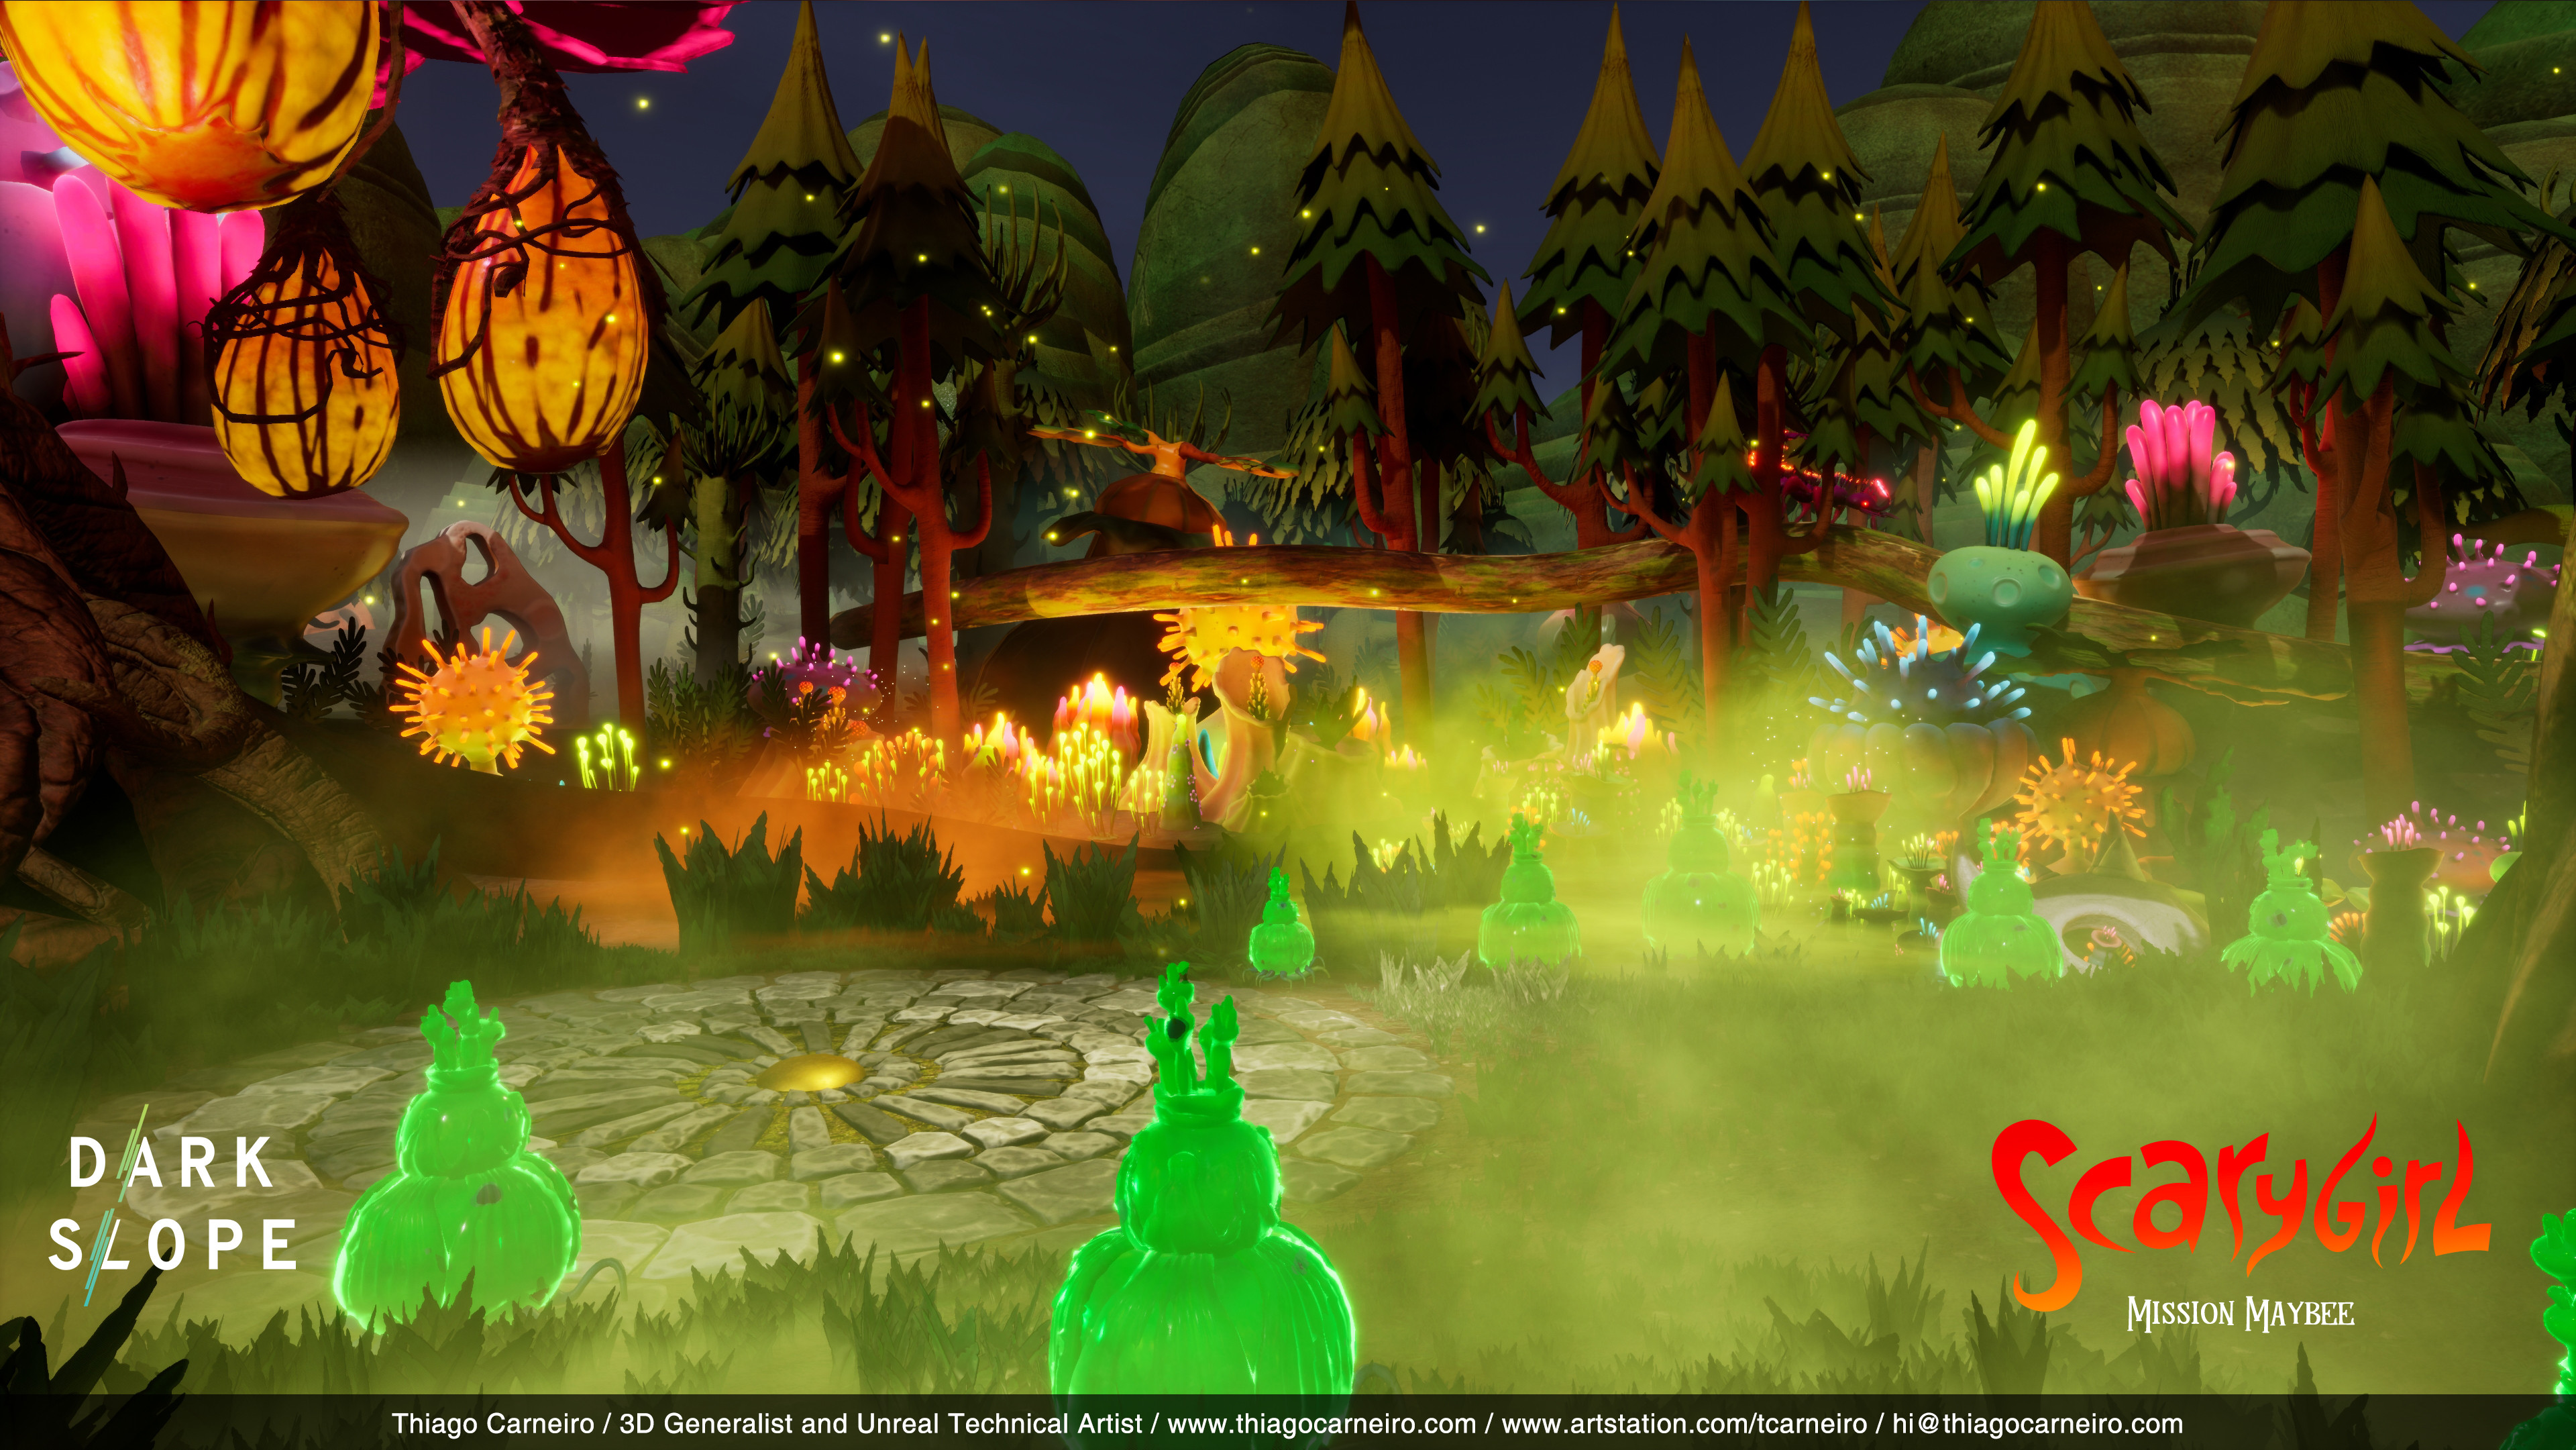 Environment Set Dressing / I was responsible for placing the assets and do the set dressing inside Unreal.